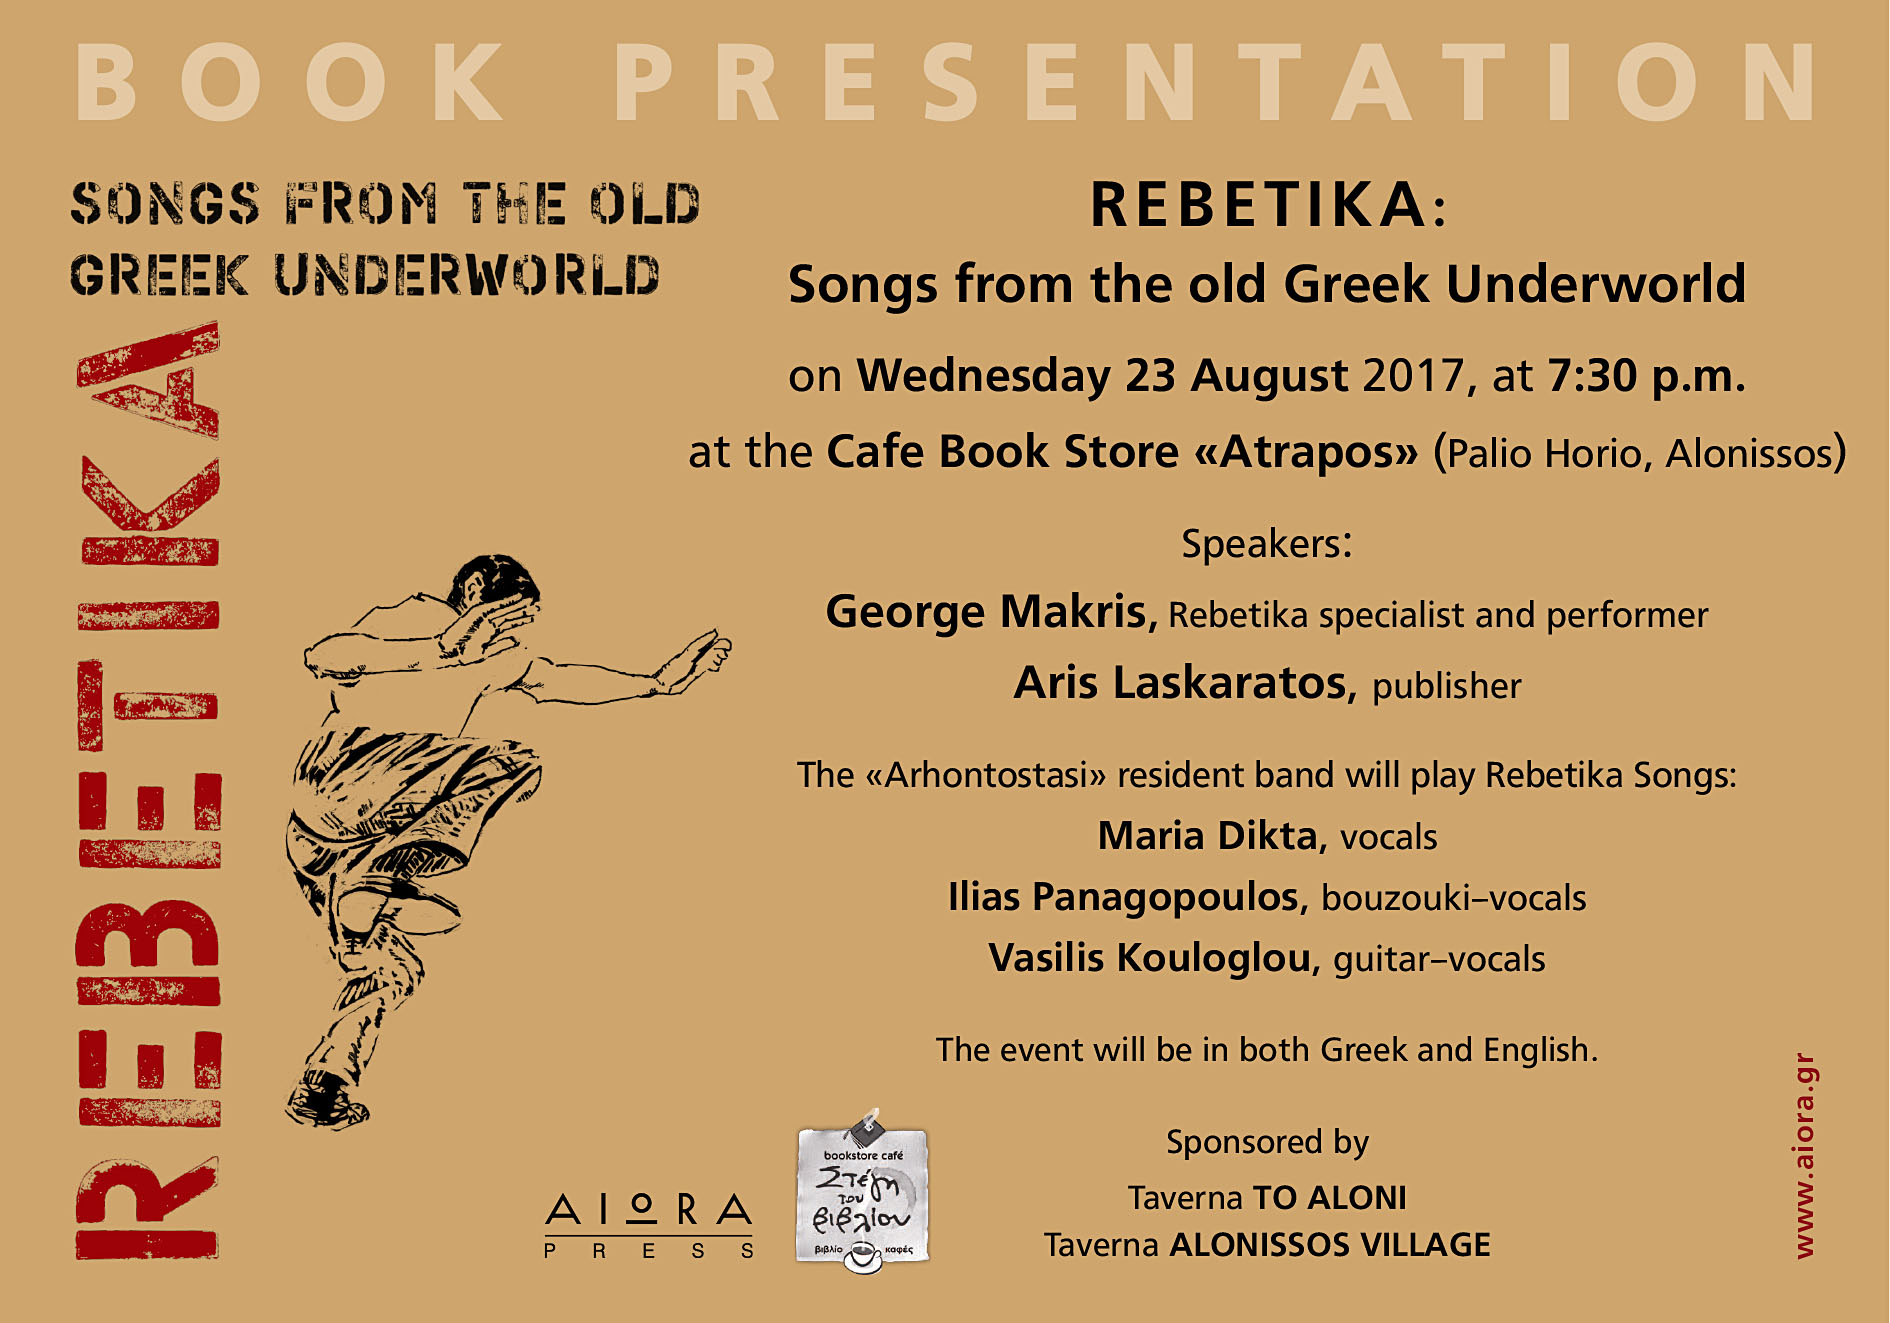 Book presentation on the island of Alonissos